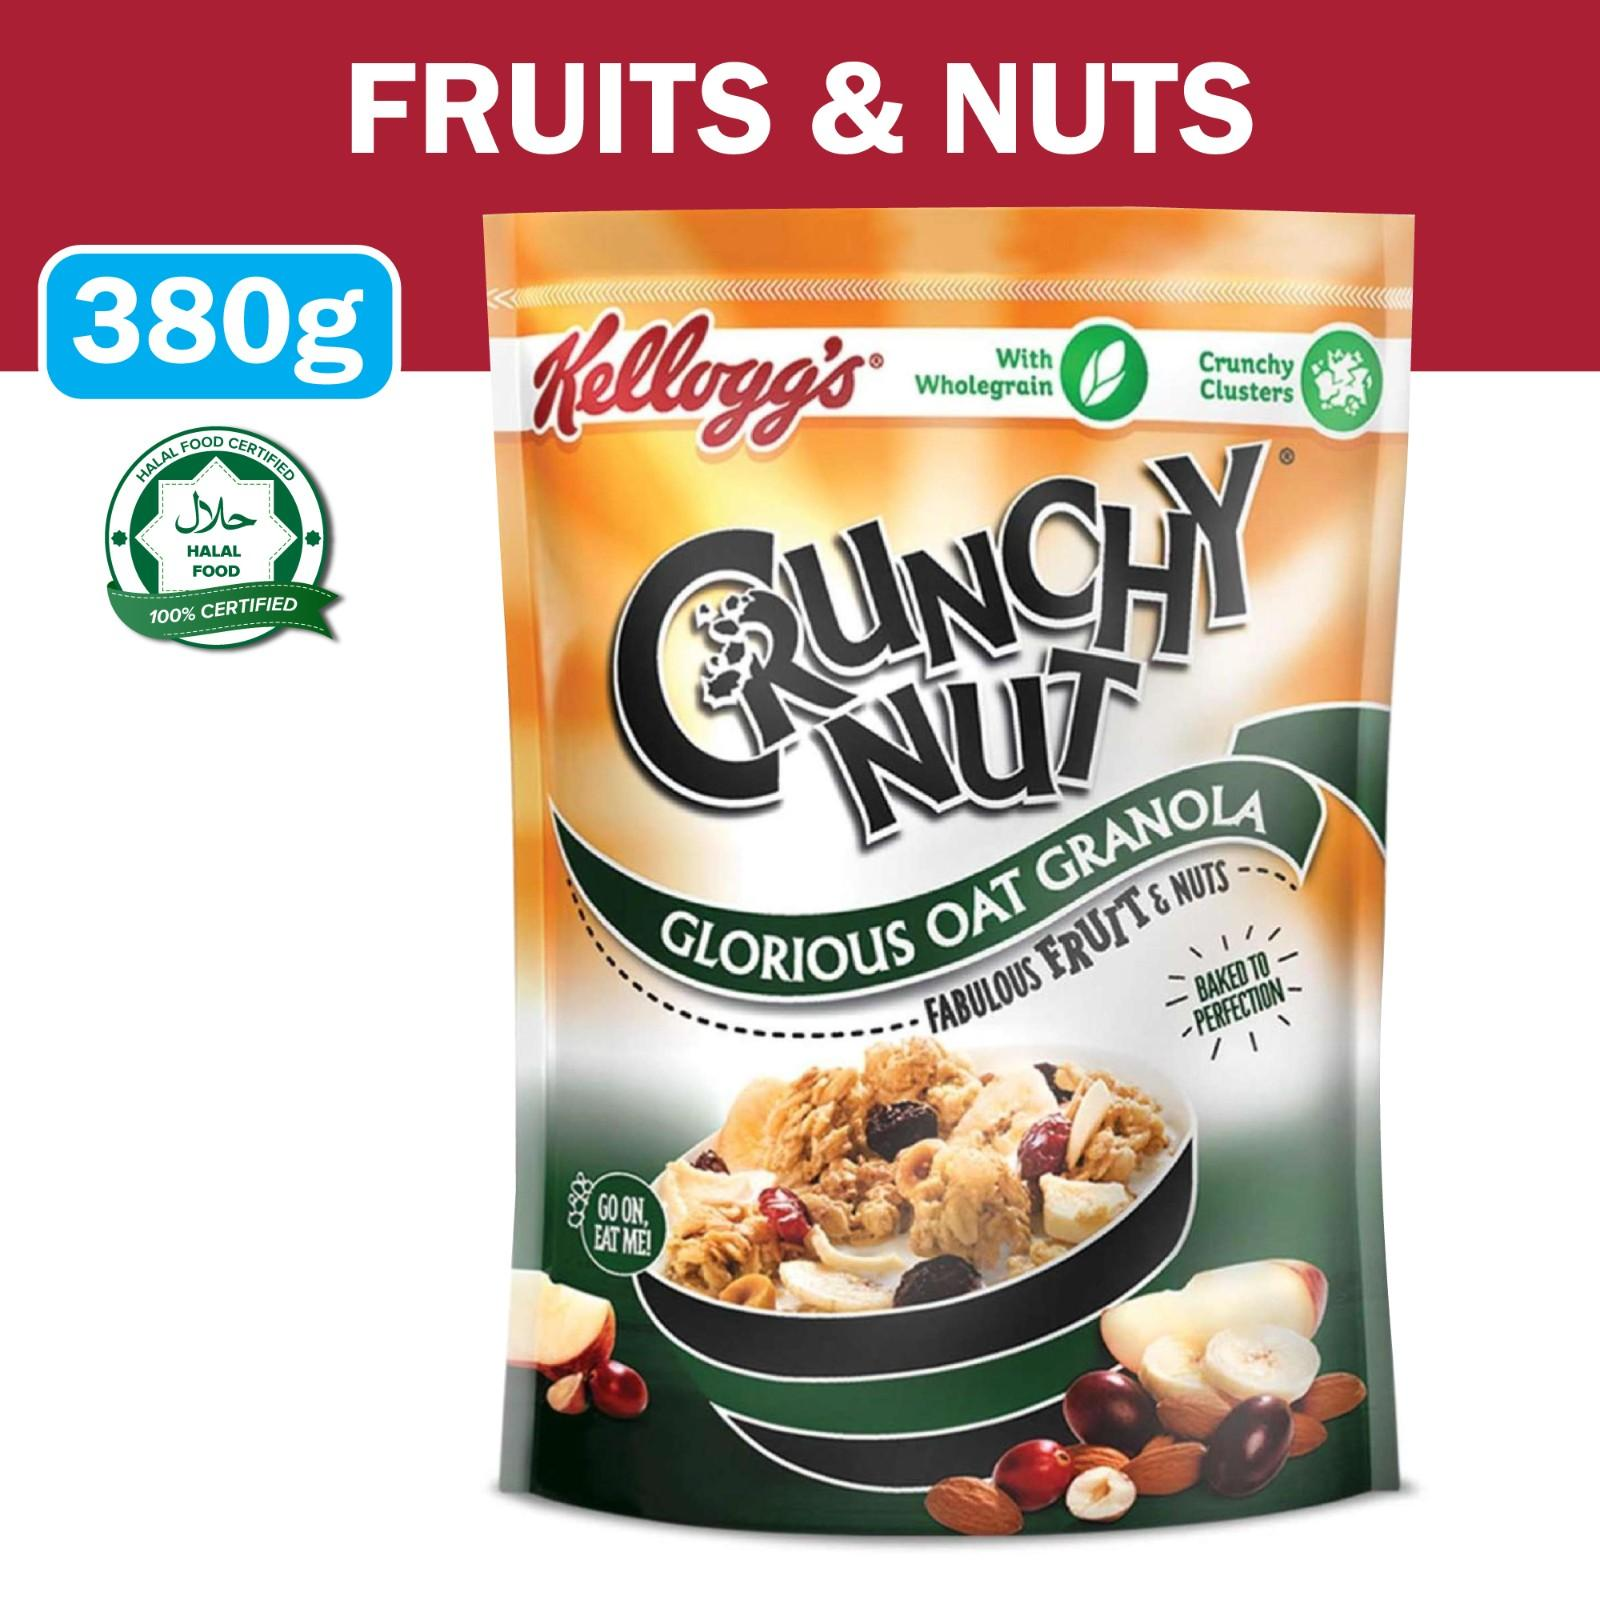 Kellogg's Fruit And Nuts Crunchy Nut Oat Granola